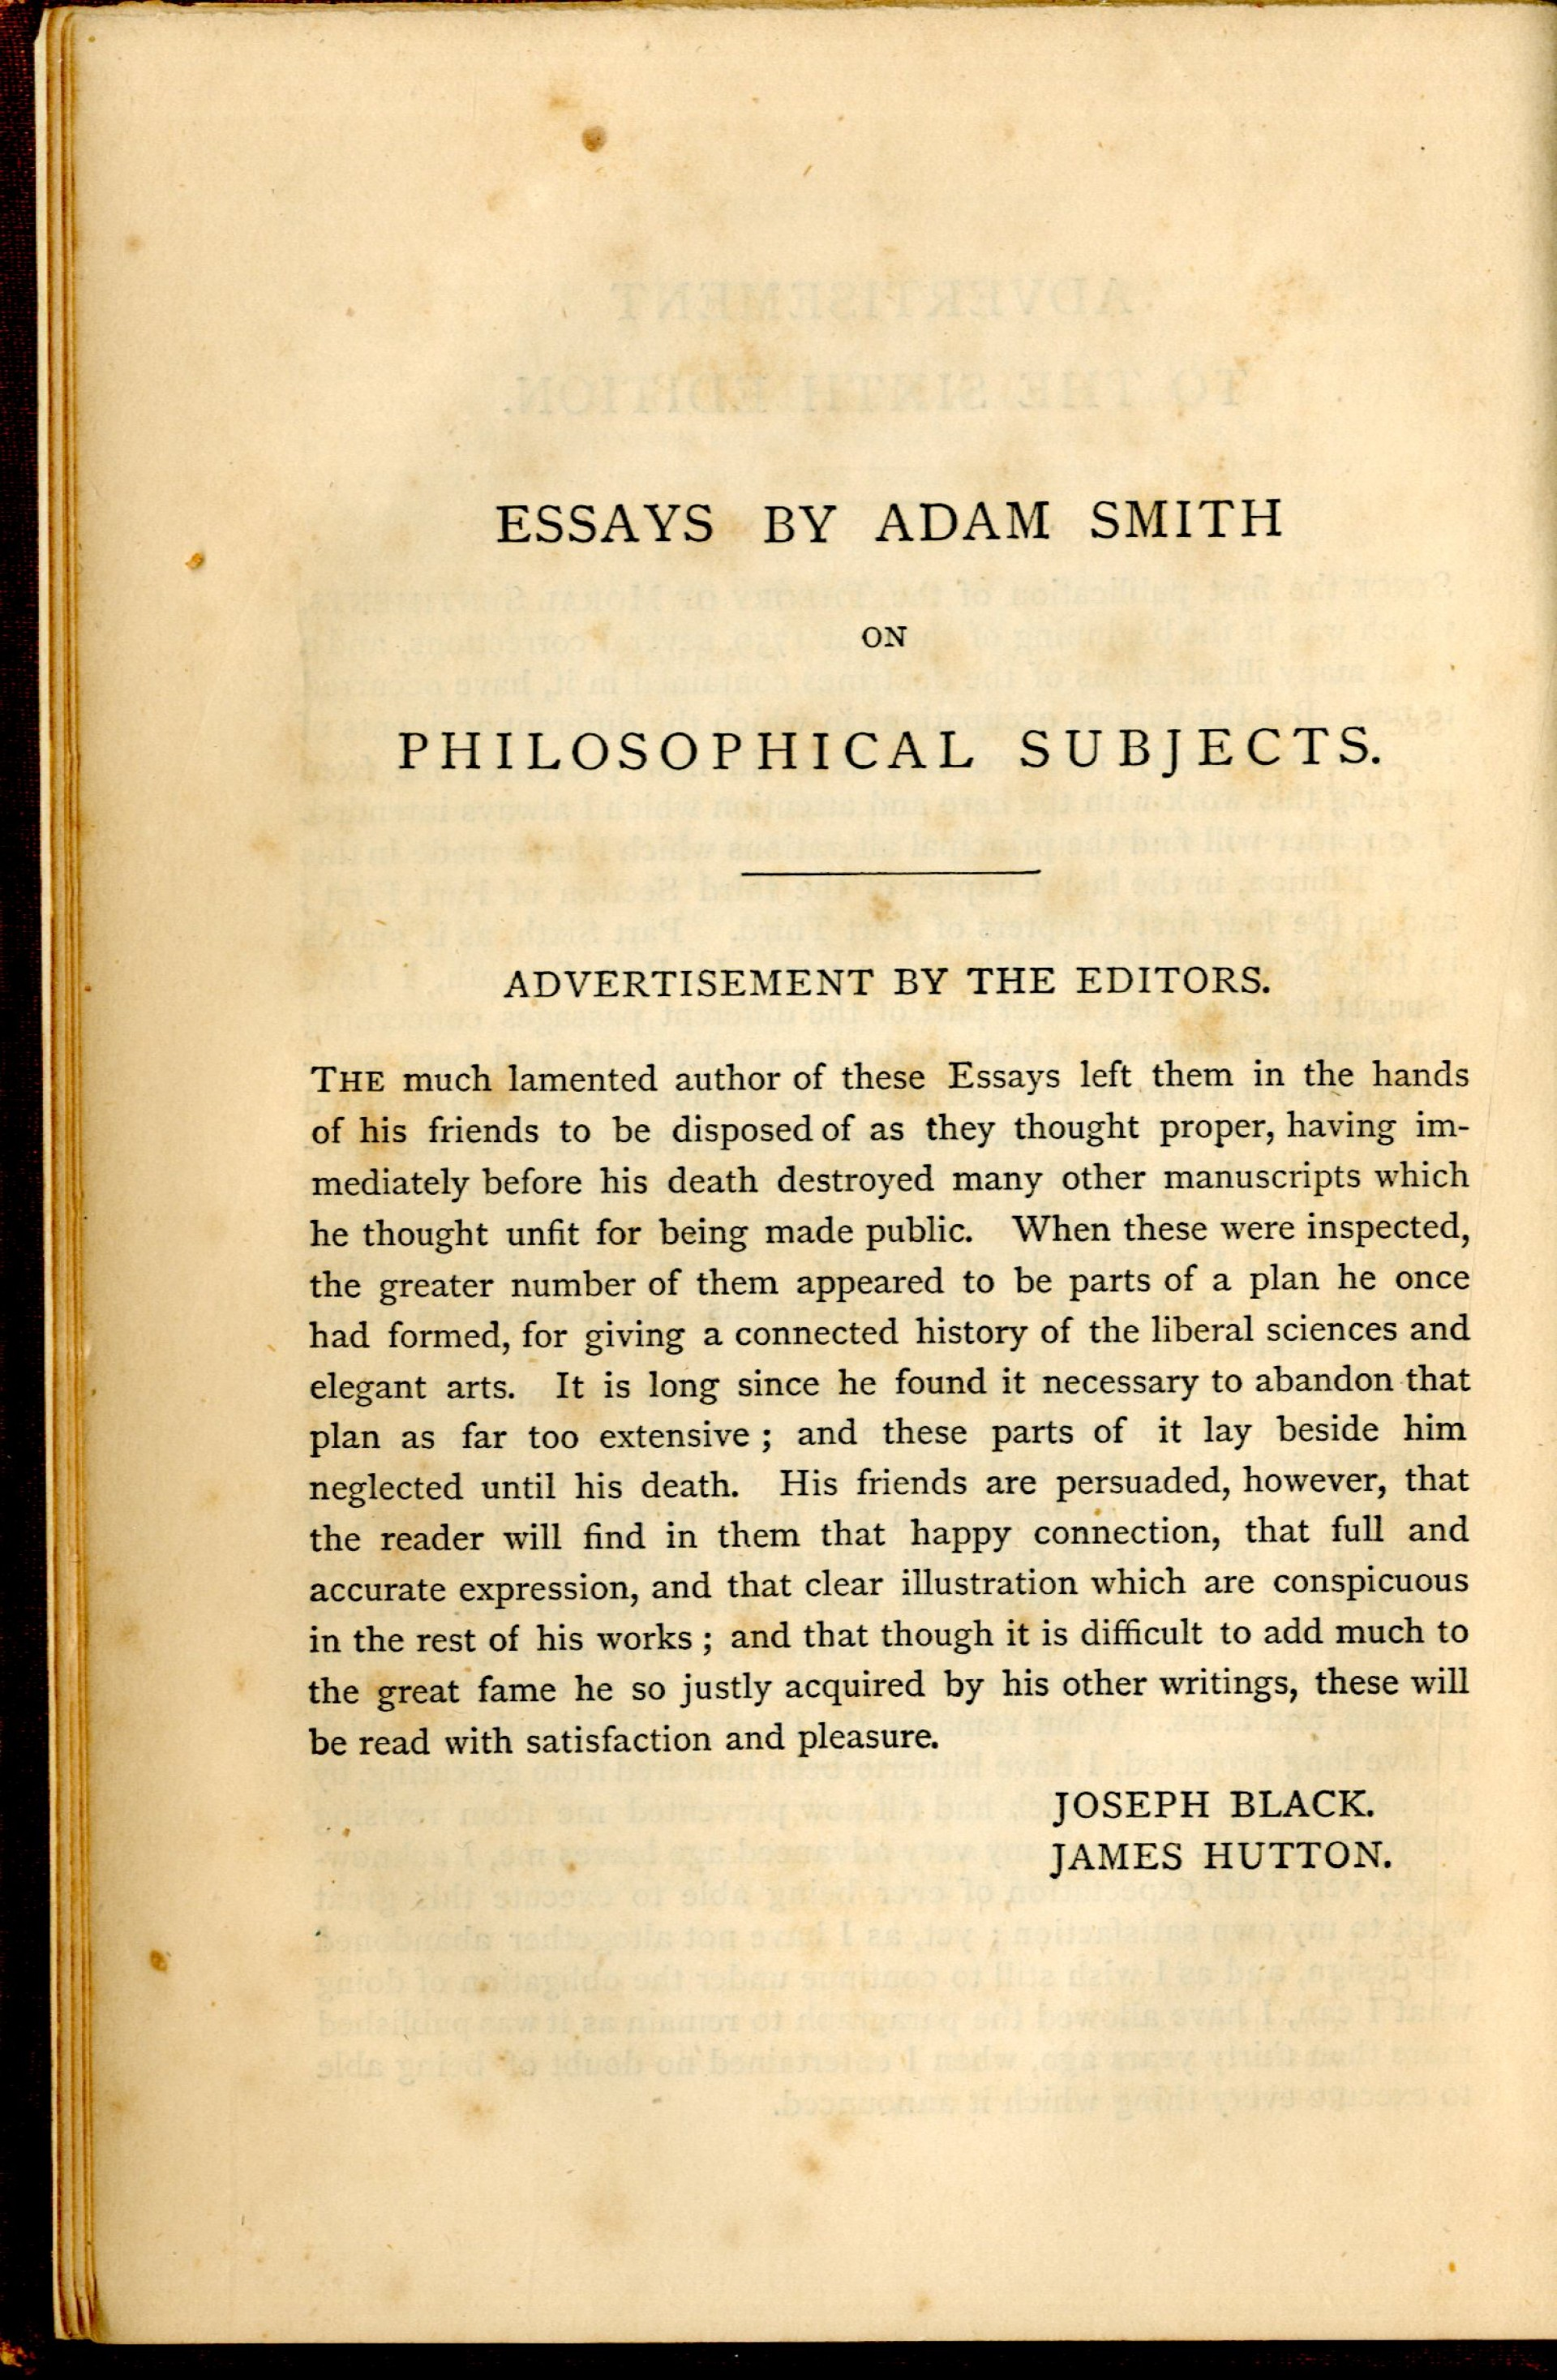 016 Essay Example Essays On Philosophical Best Subjects Smith Pdf 1920